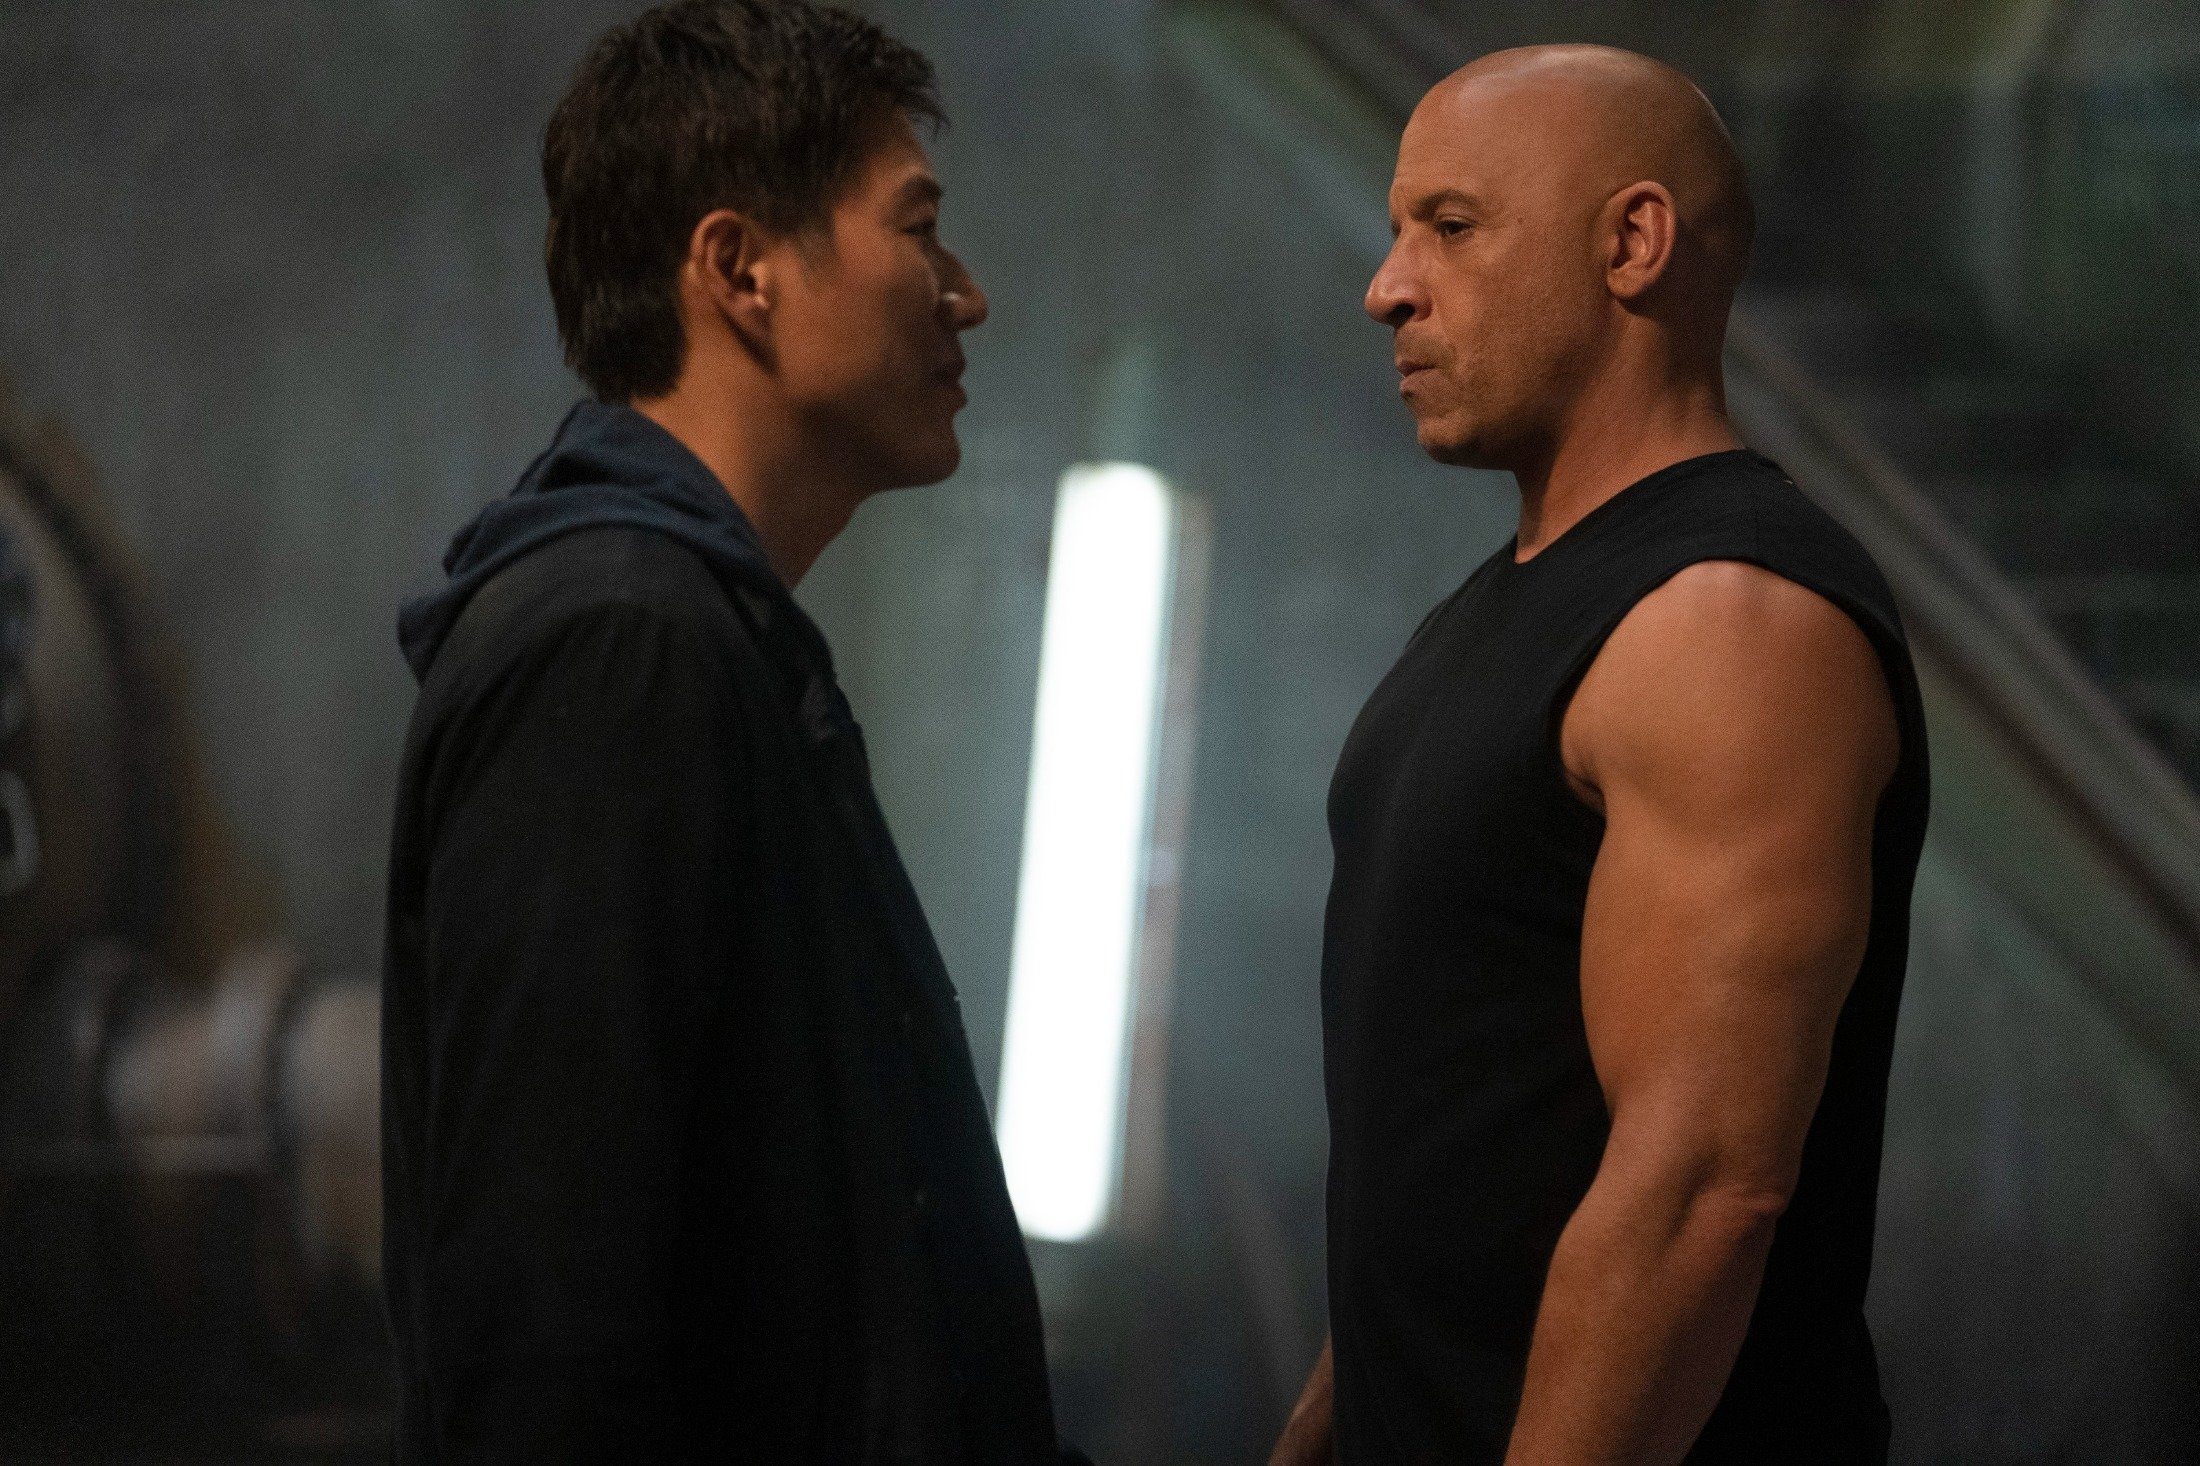 Sung Kang (L), and Vin Diesel face off in a scene from the movie'F9: The Fast Saga.' (Universal Pictures via AP)